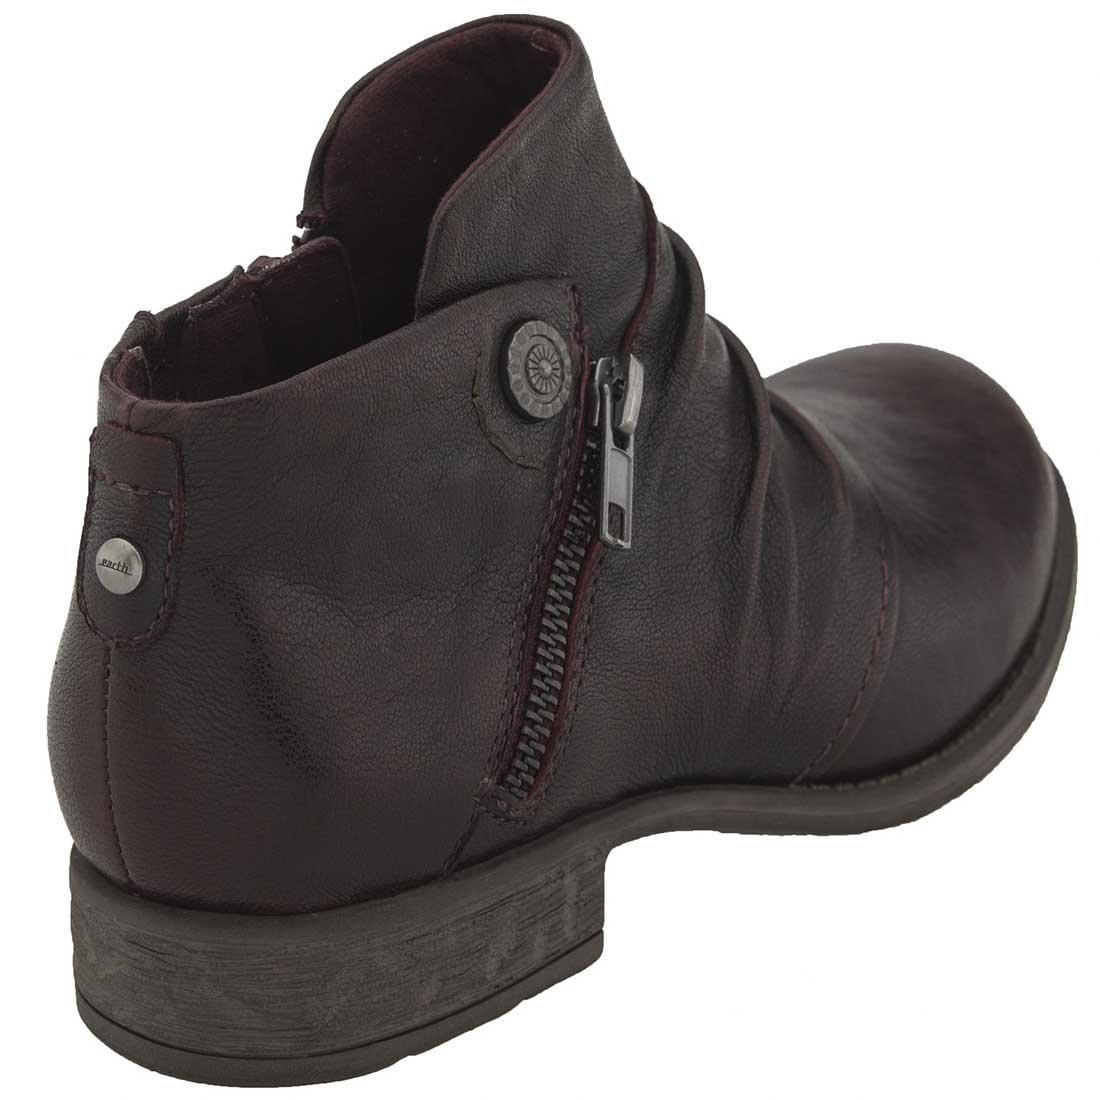 Earth Womens Ronan Closed Toe Ankle Fashion Boots B06W2KXQSS 8.5 B(M) US|Garnet Brush-off Leather